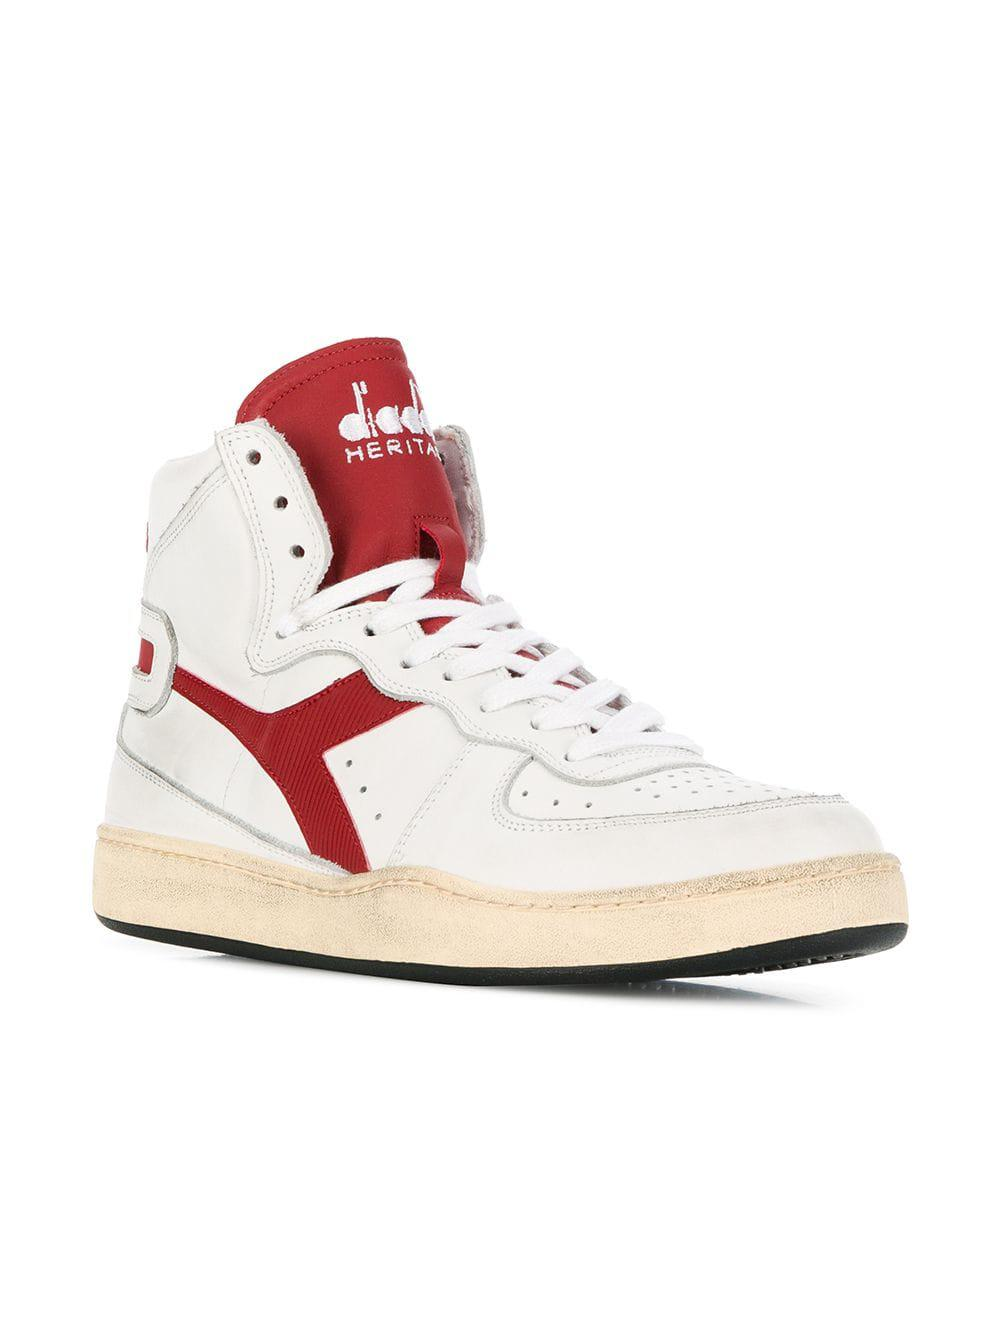 9a36445450 Diadora Side Logo High Top Sneakers in White for Men - Lyst